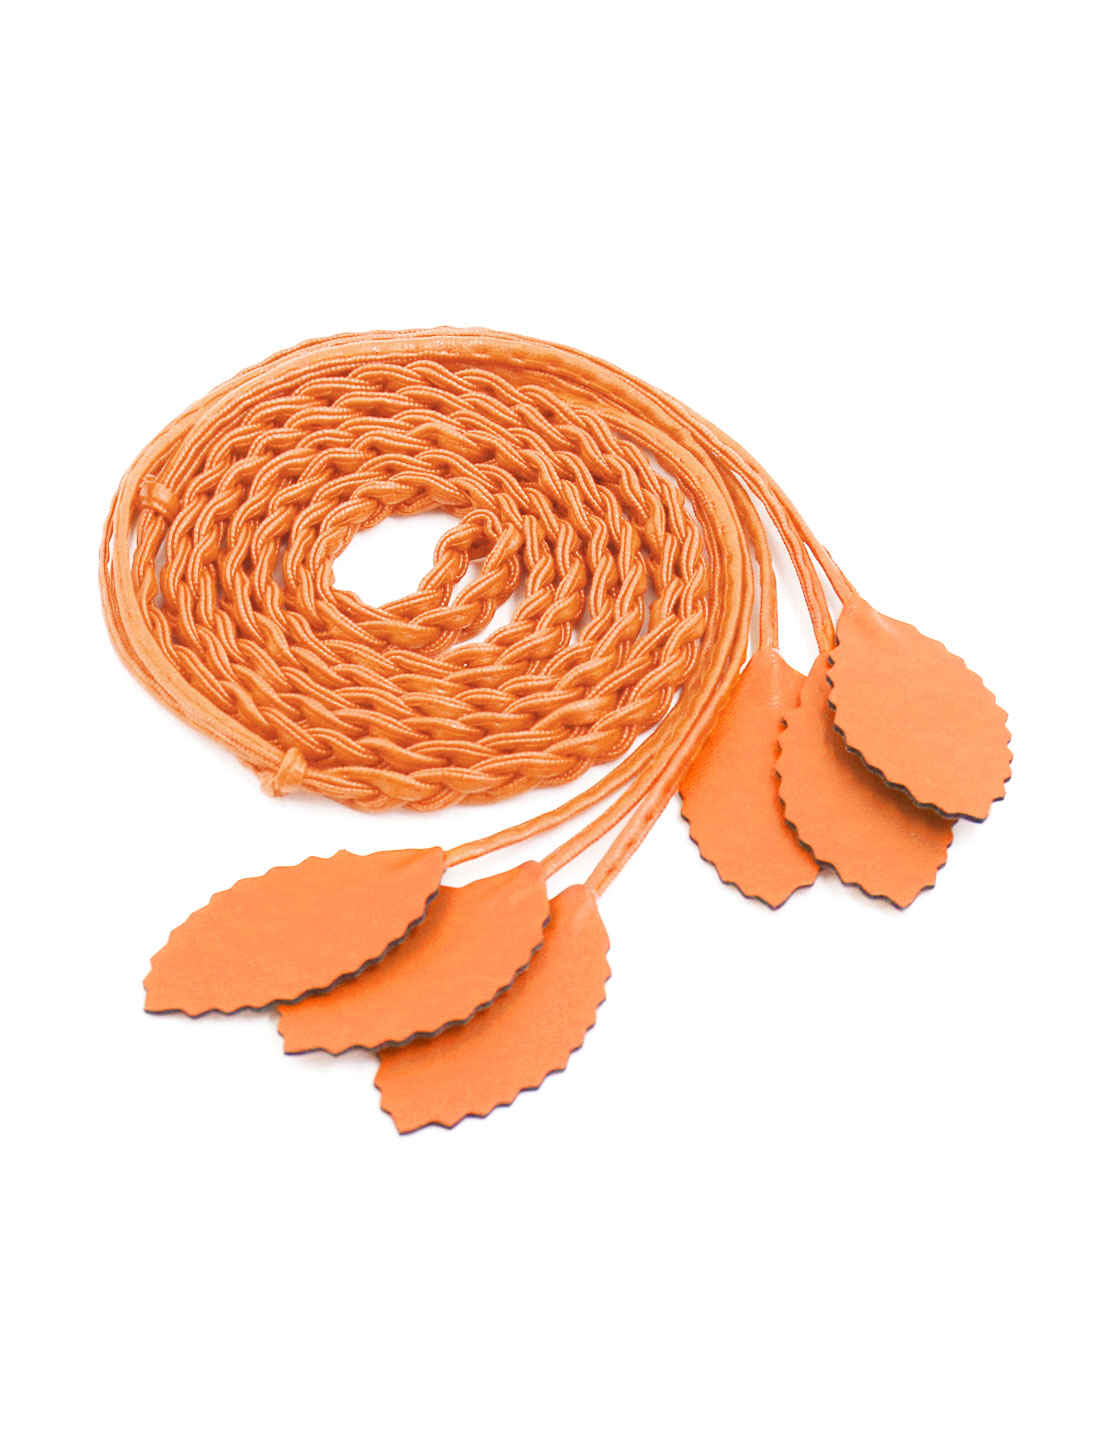 Women Self Tie Leaves Skinny PU Braided Waist Belt Orange